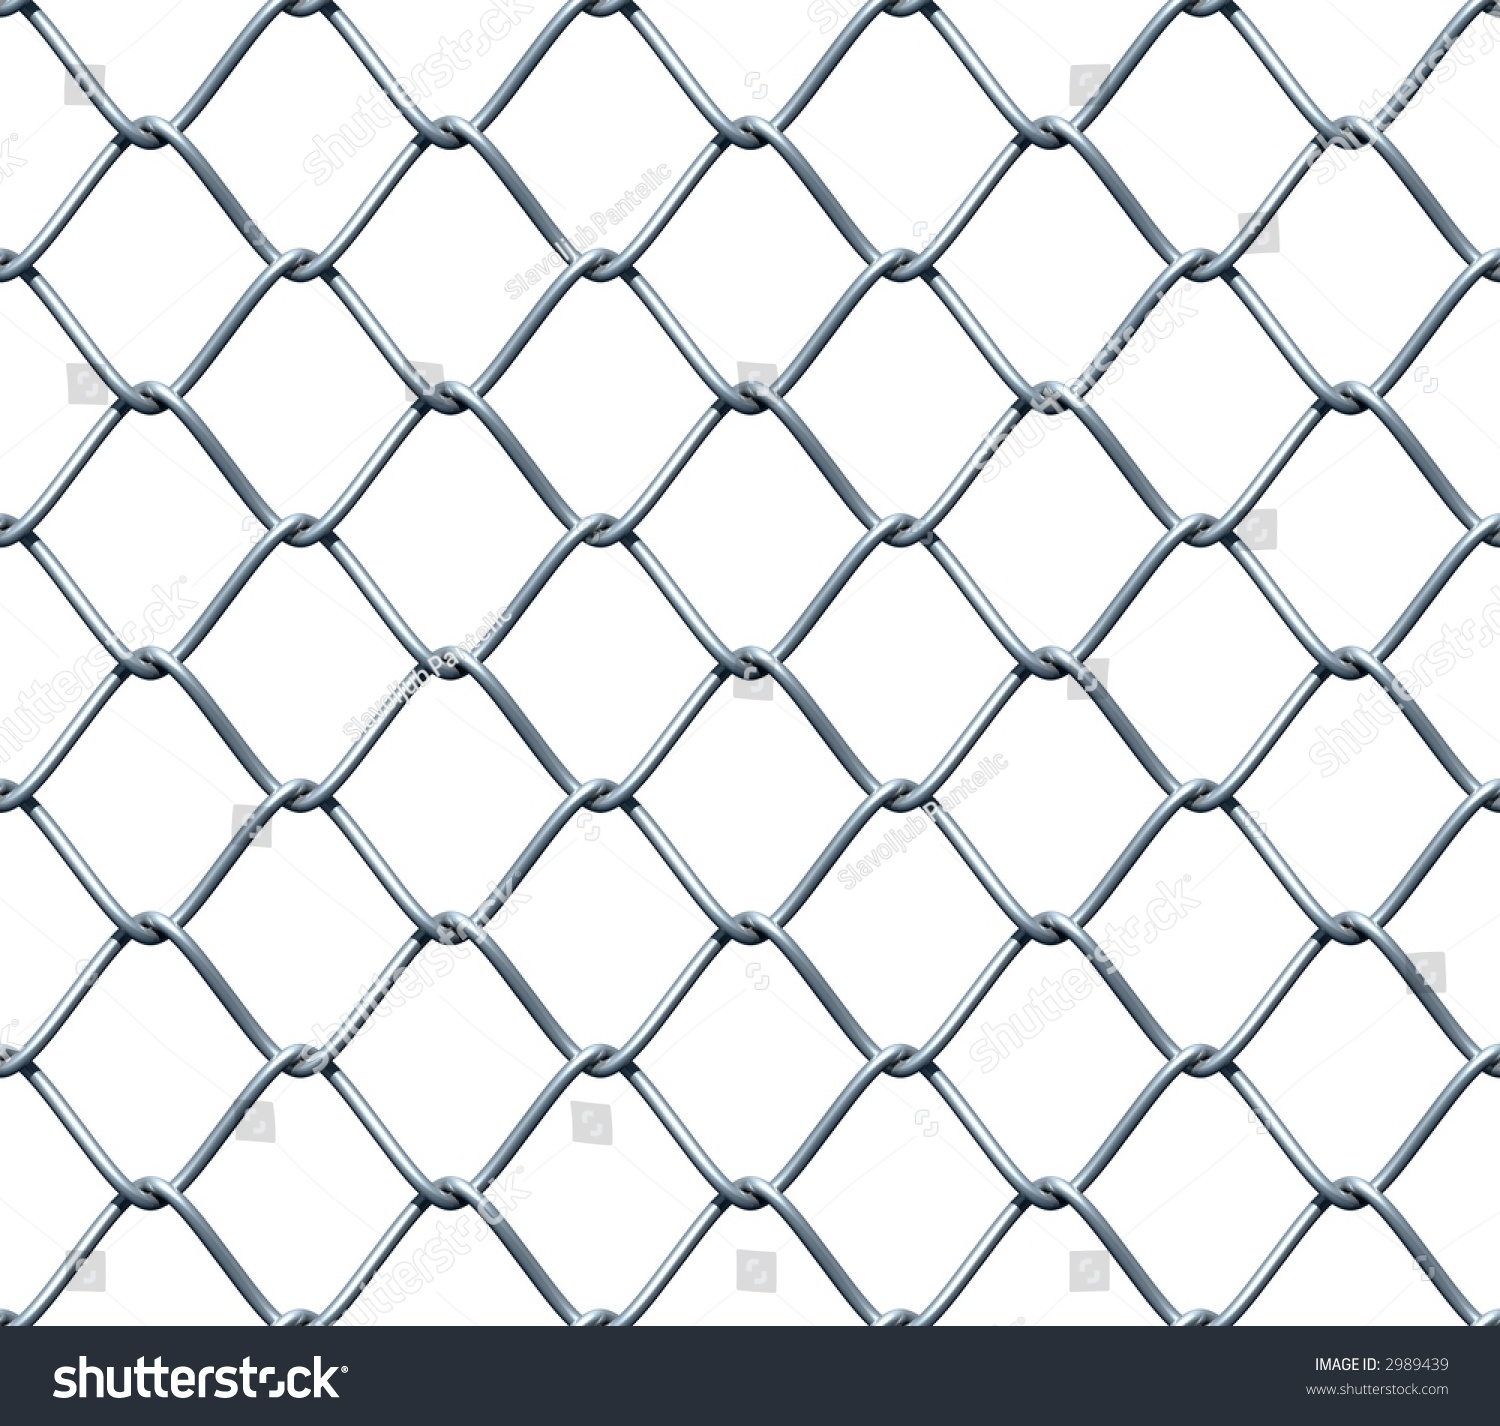 Seamless Chainlink Fence 3d Rendered Seamless Stock